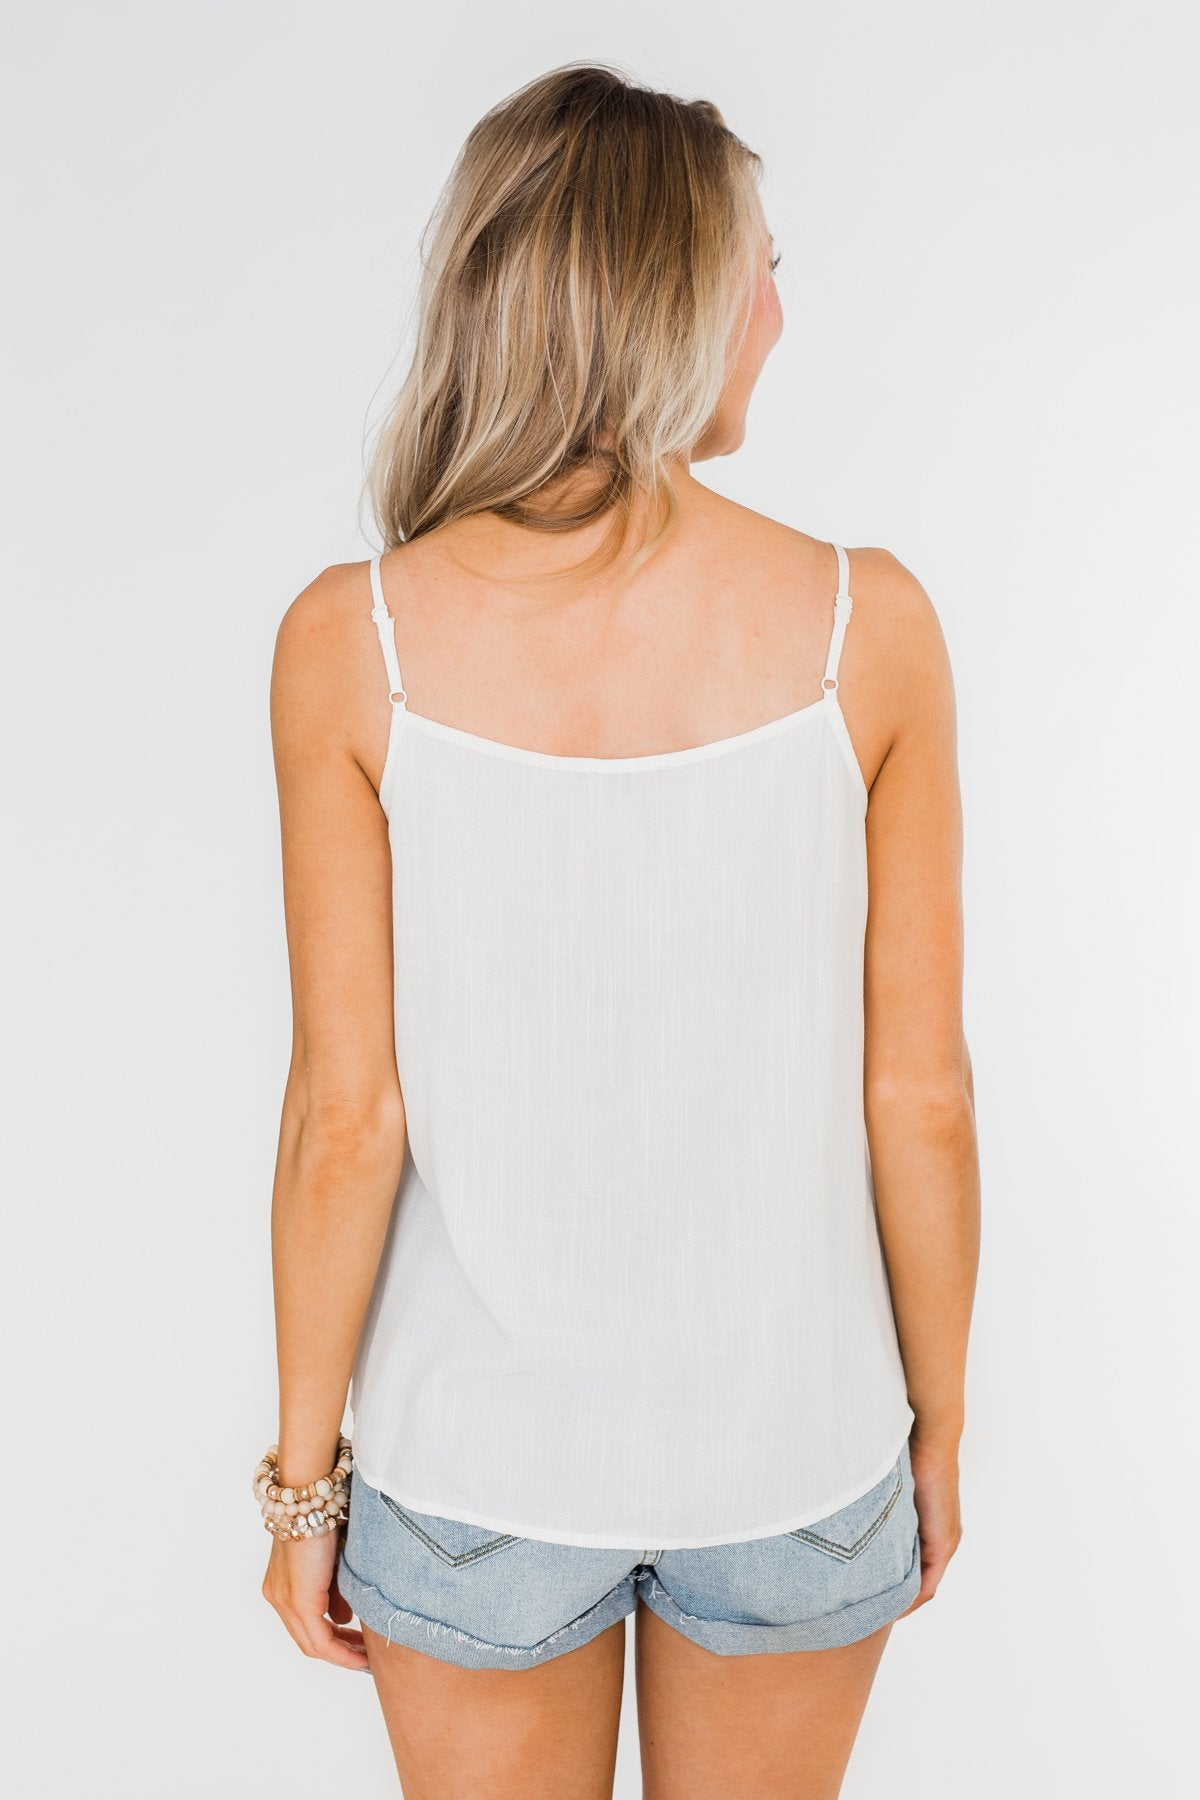 Ideal Situation Ruffle Tank Top- Ivory